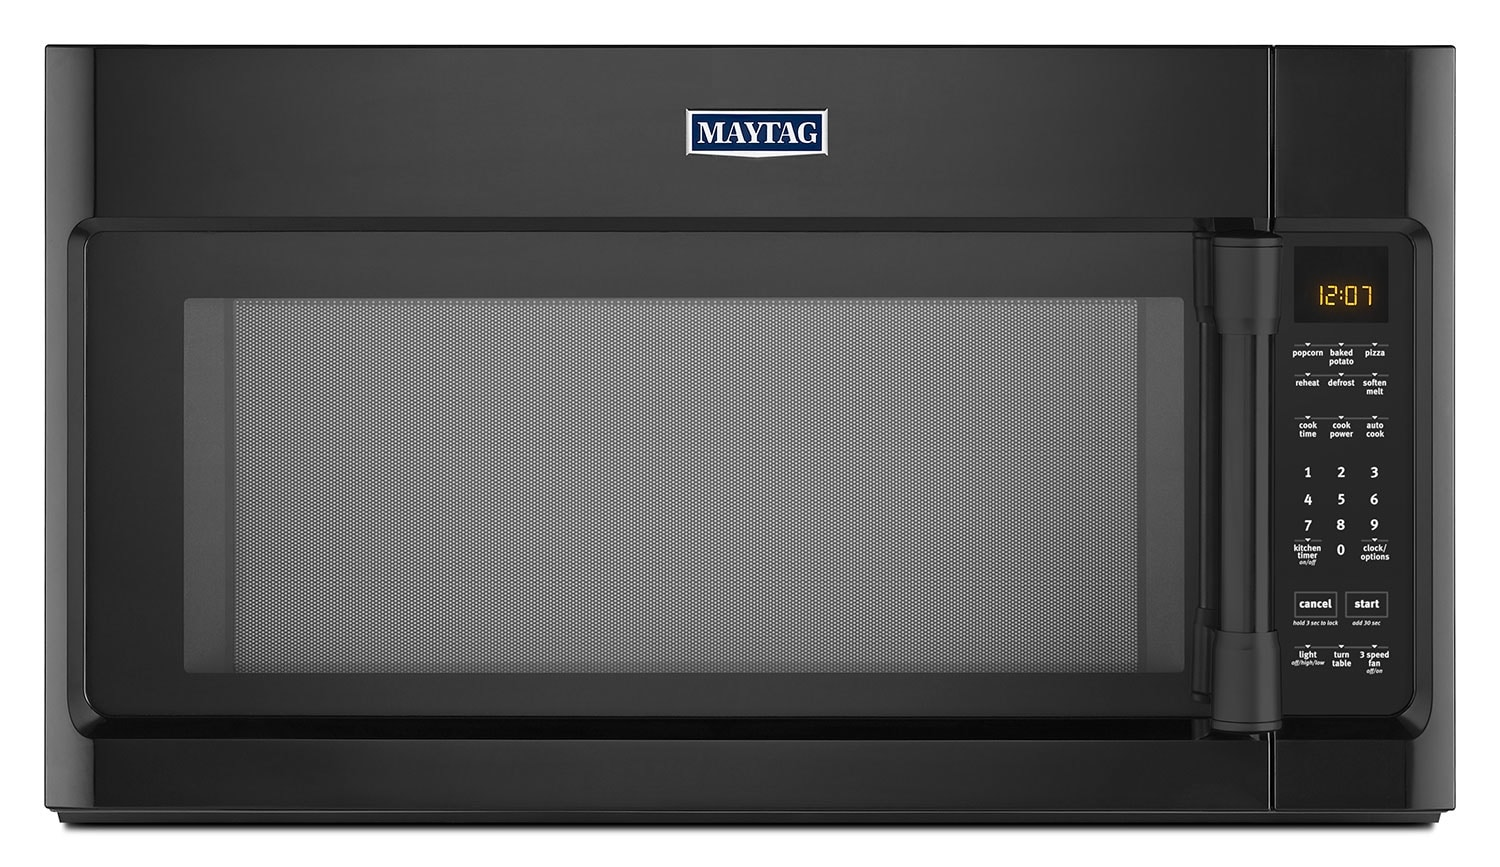 Maytag Black Over-the-Range Microwave (2.0 Cu. Ft.) - YMMV4205DB